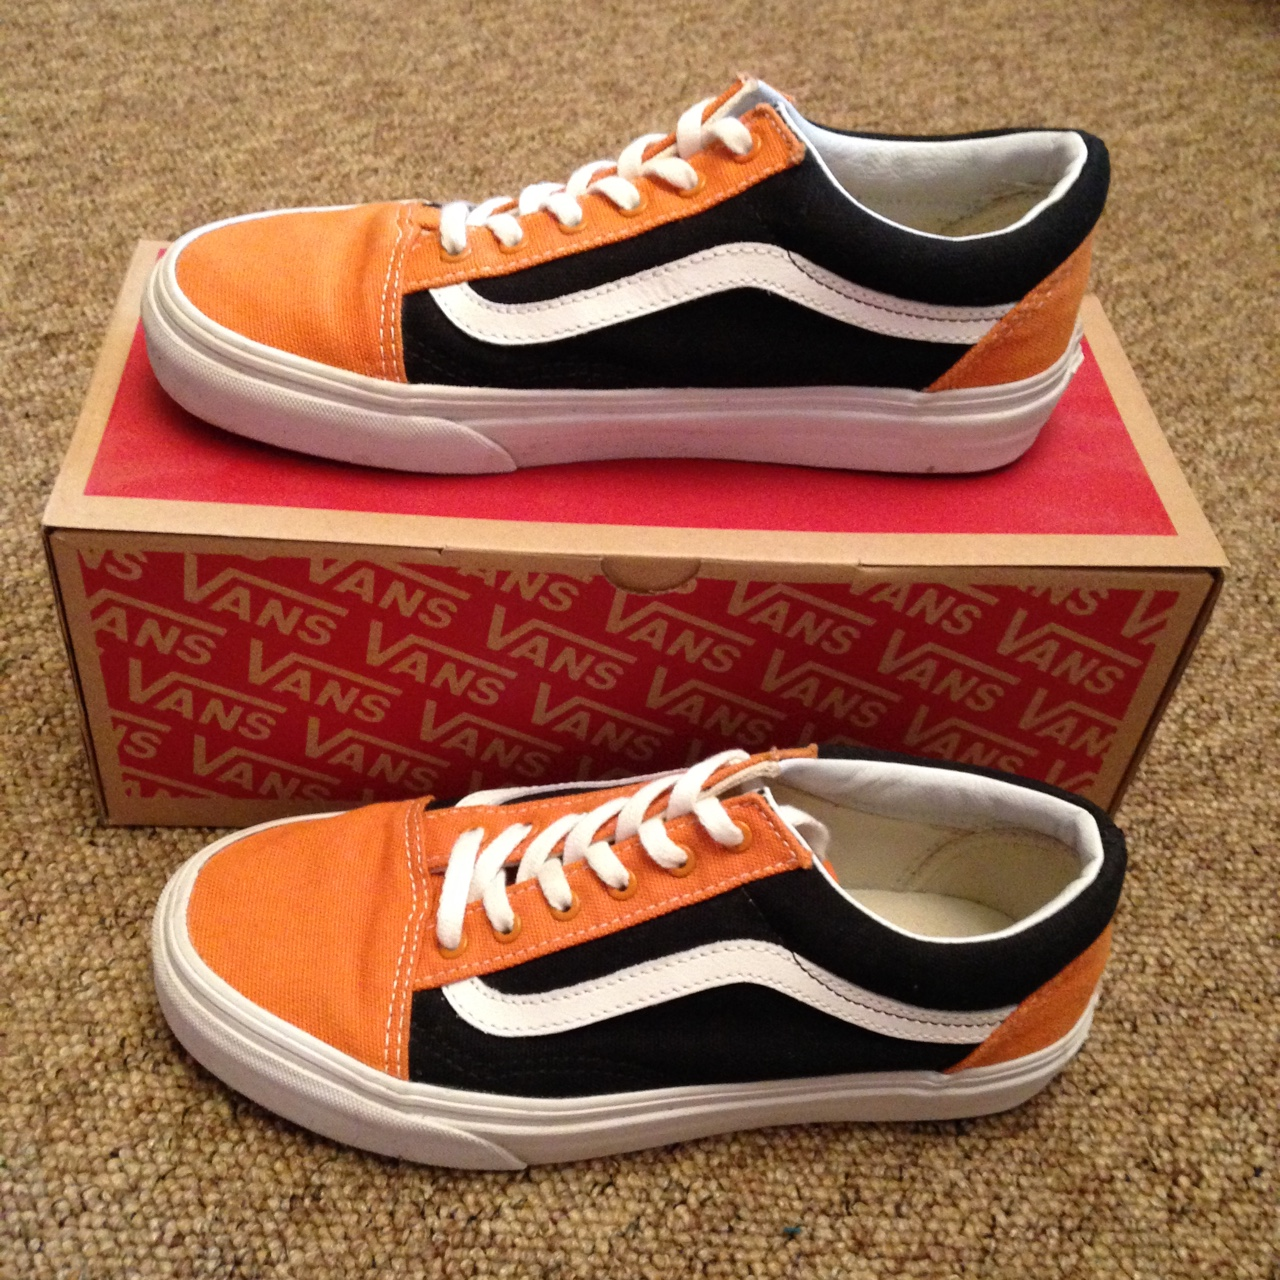 authentic old skool golden coast vans with original Depop